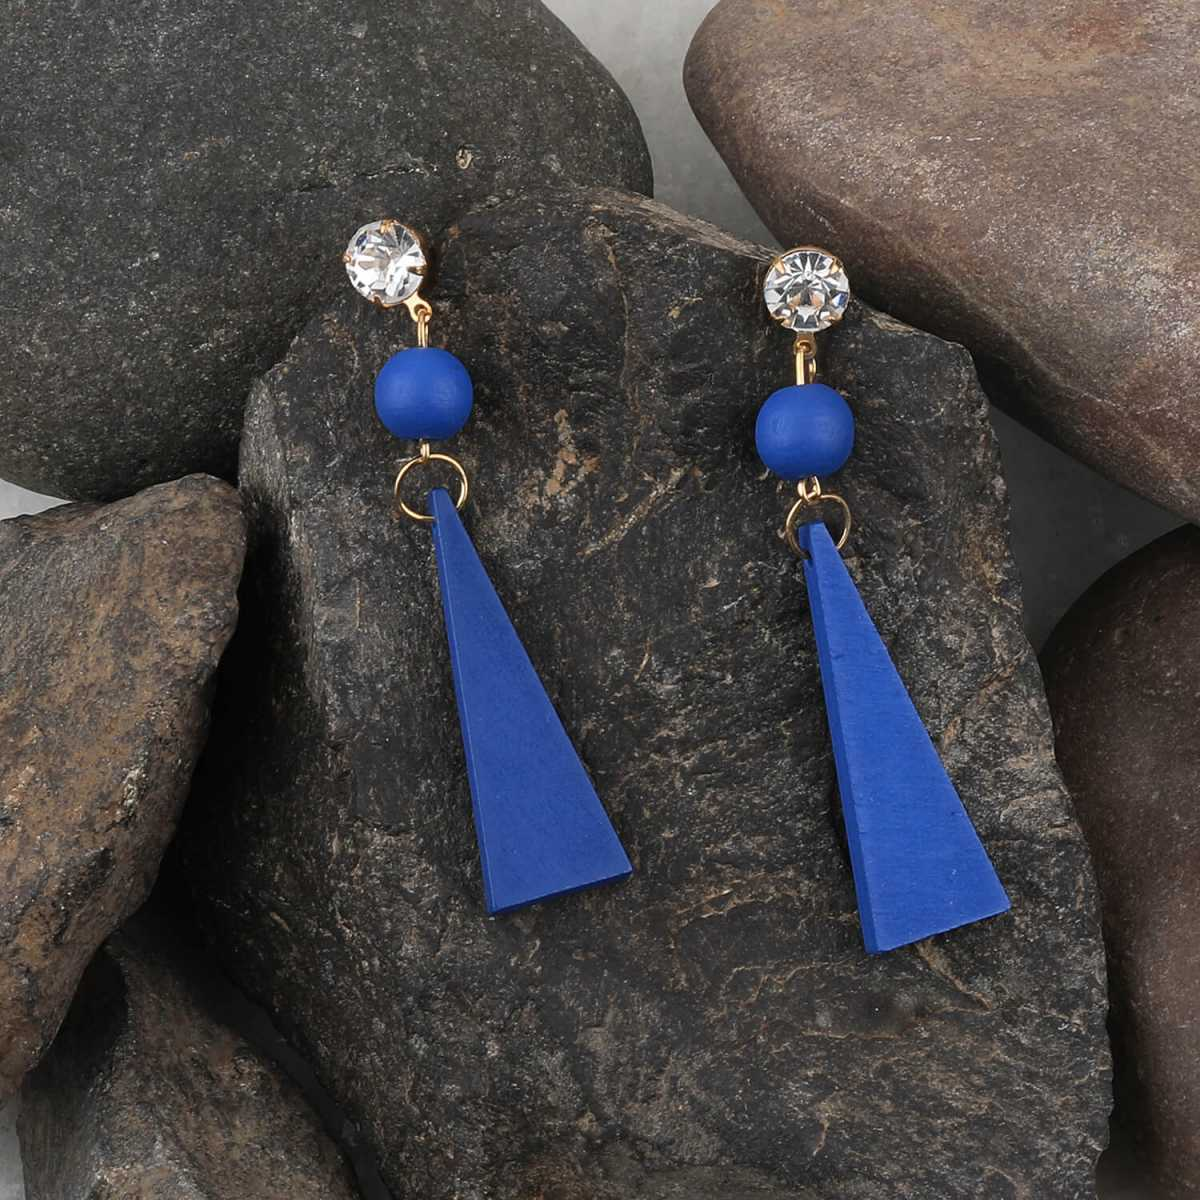 SILVER SHINE Exclusive Diamond Blue Wooden Earrings Long Dangler Light Weight for Girls and Women.